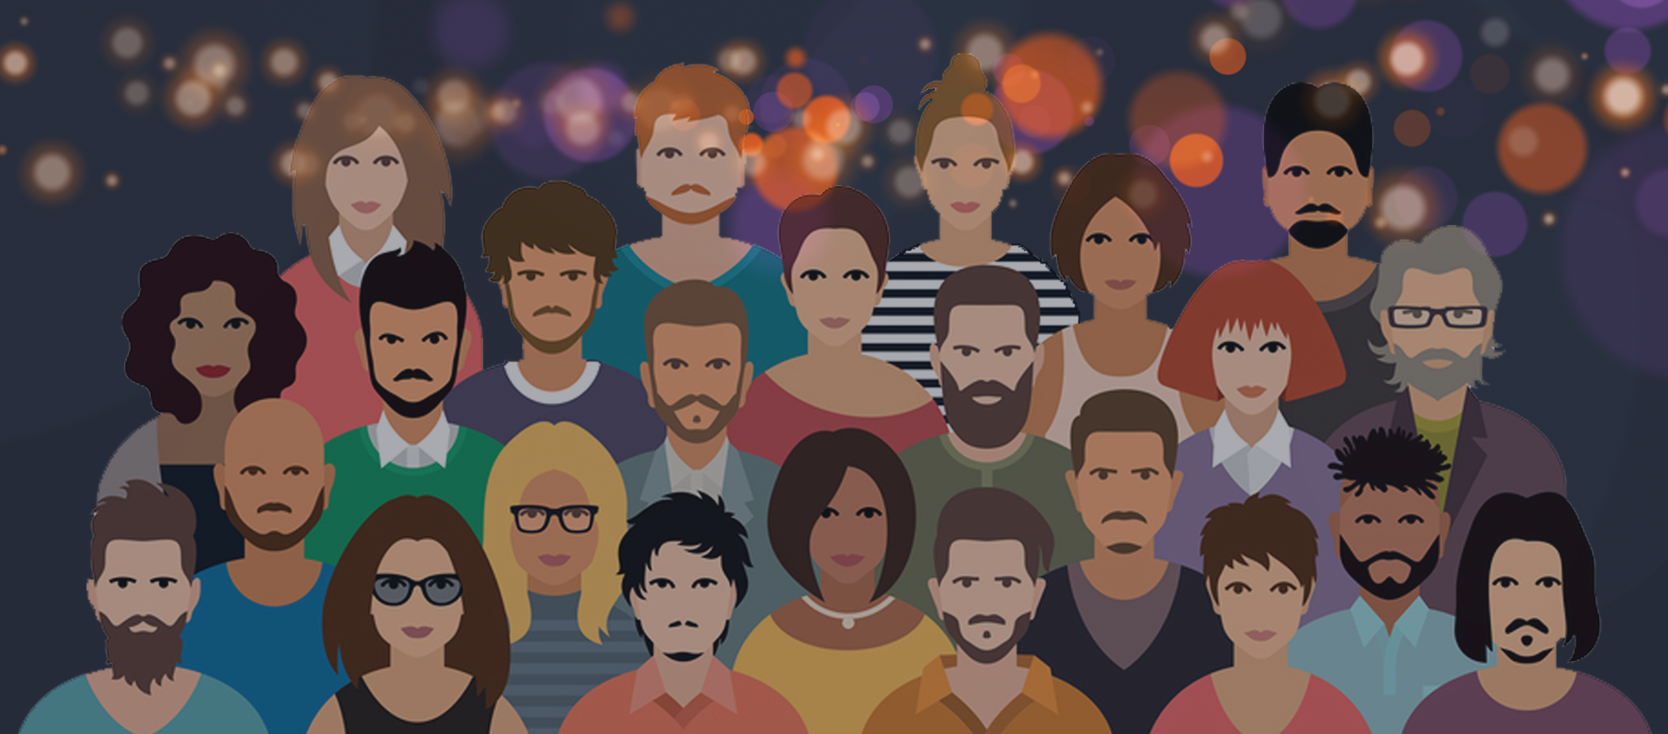 The 15 Types of People You'll Meet at a Conference